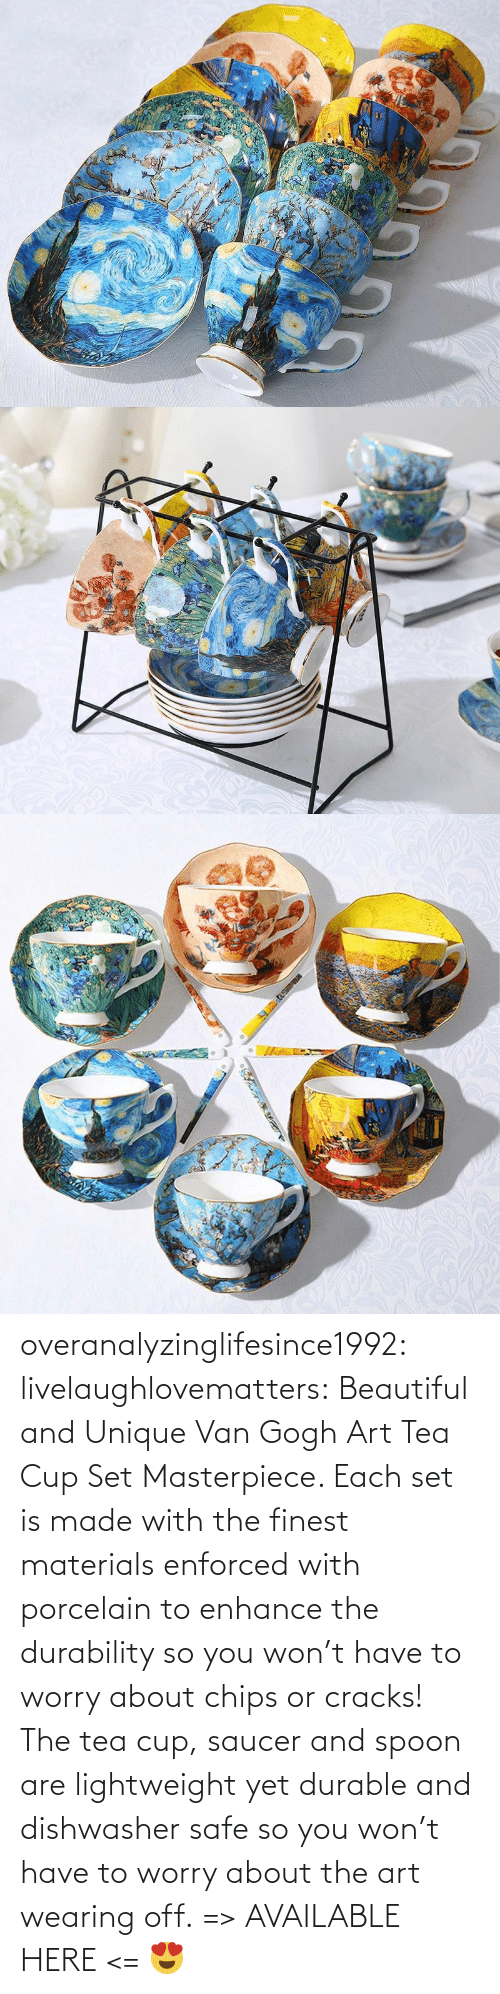 tea: overanalyzinglifesince1992: livelaughlovematters:  Beautiful and Unique Van Gogh Art Tea Cup Set Masterpiece. Each set is made with the finest materials enforced with porcelain to enhance the durability so you won't have to worry about chips or cracks! The tea cup, saucer and spoon are lightweight yet durable and dishwasher safe so you won't have to worry about the art wearing off. => AVAILABLE HERE <=    😍